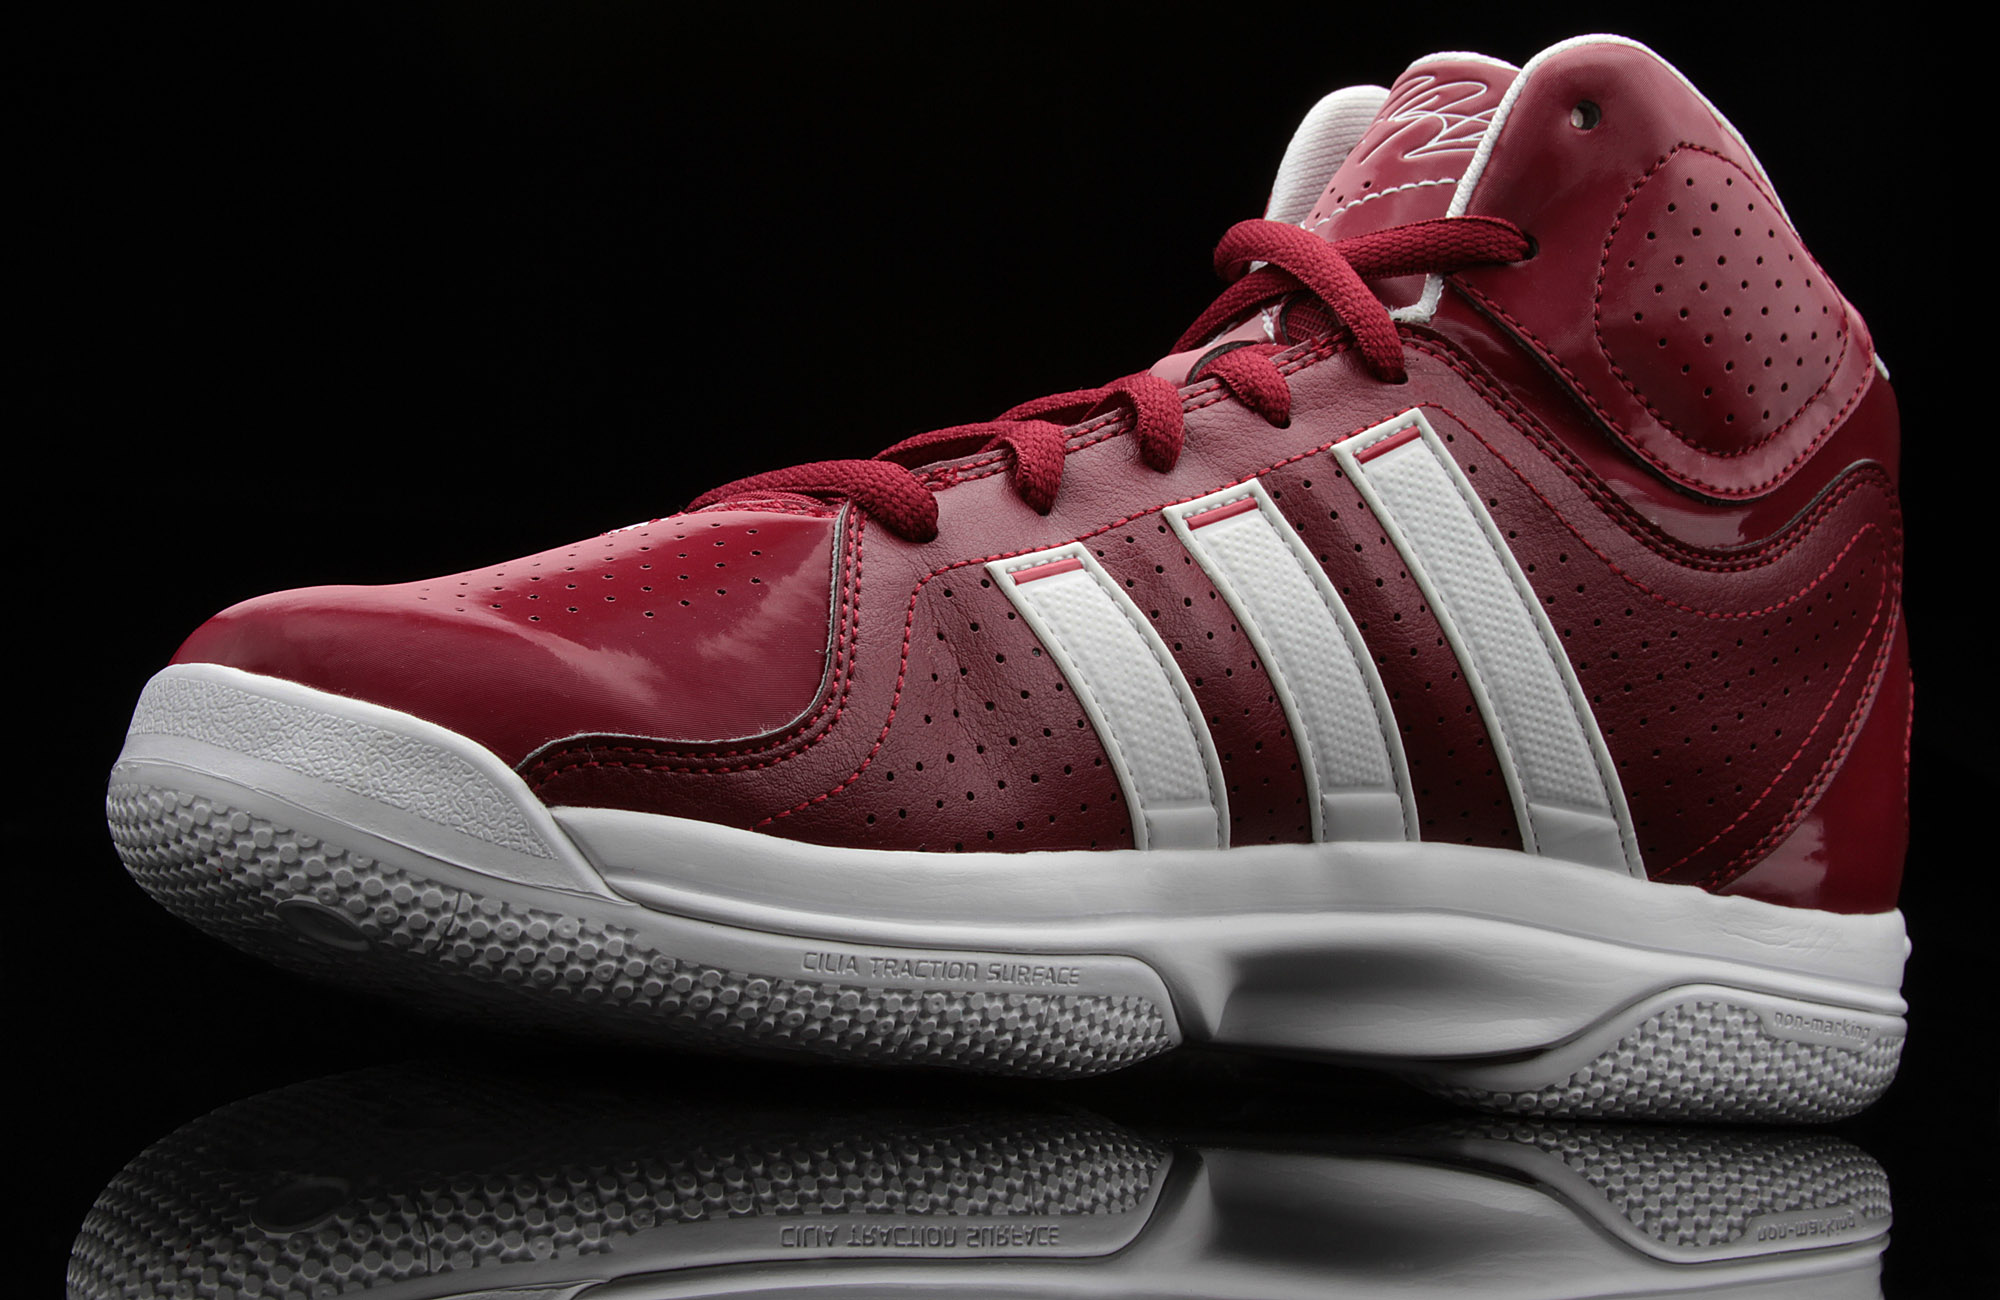 7f24d7b31f Adidas Aggies Edition Basketball Shoes